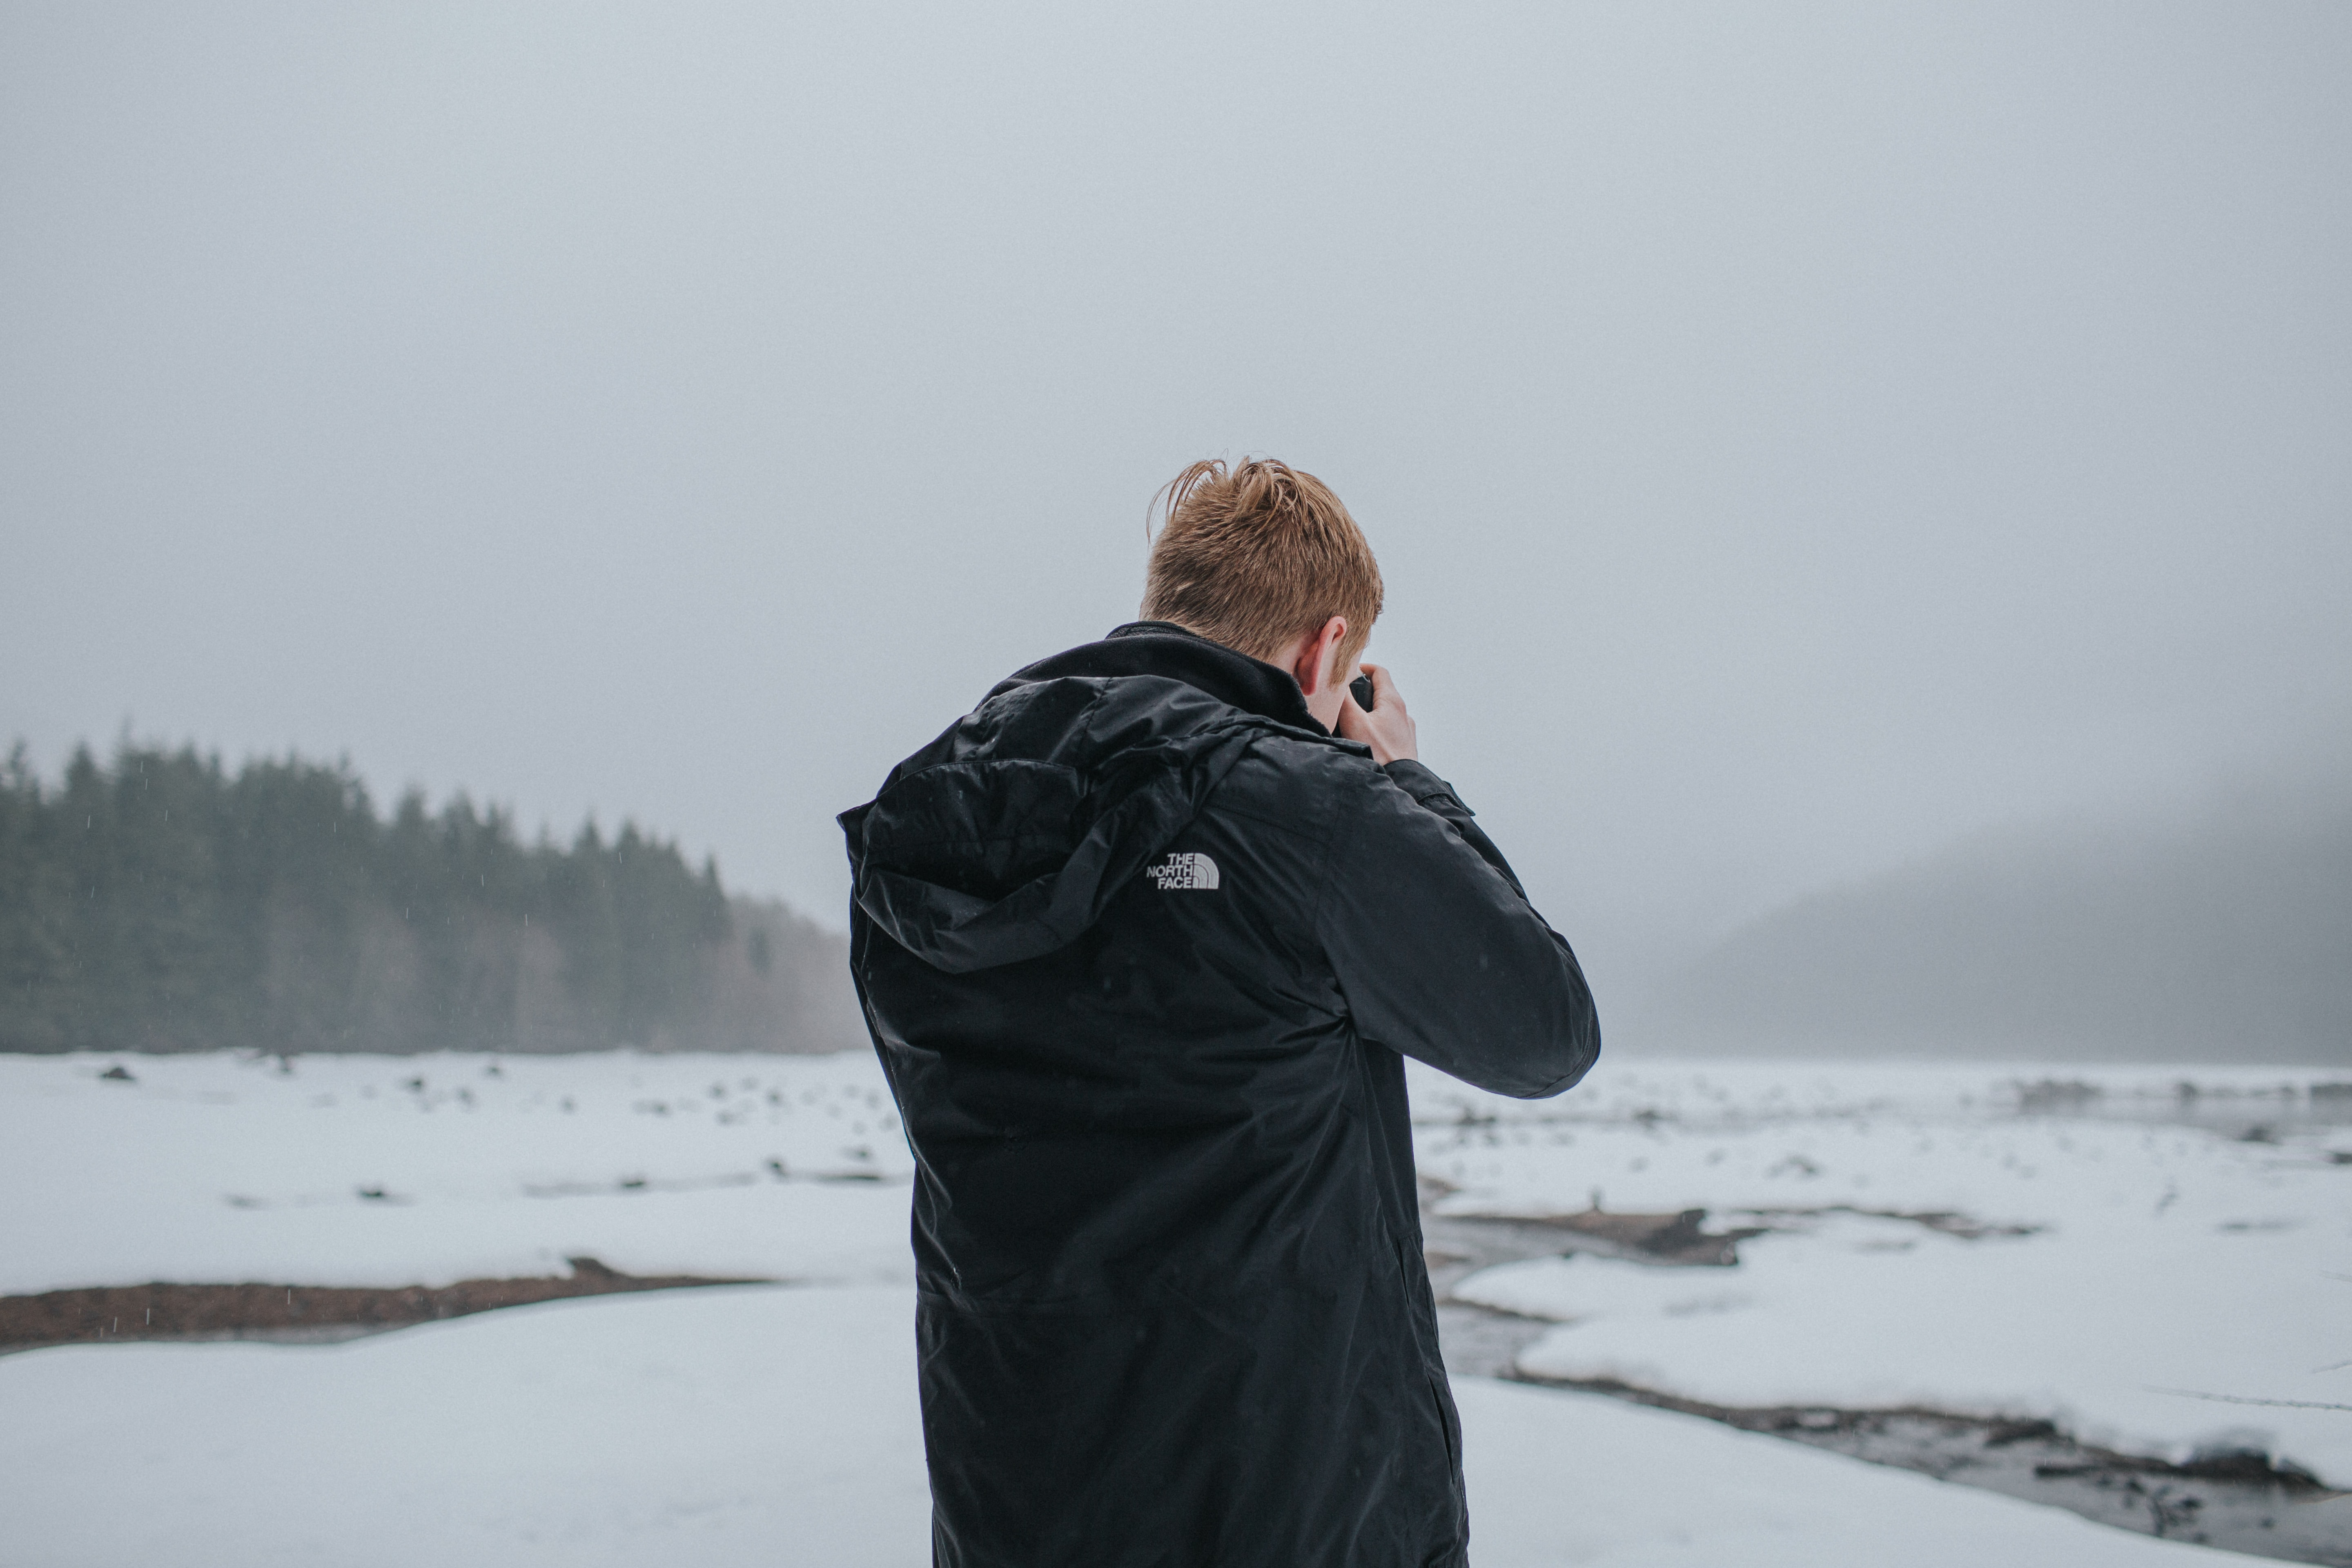 Man in a northface jacket taking a photo of the snow